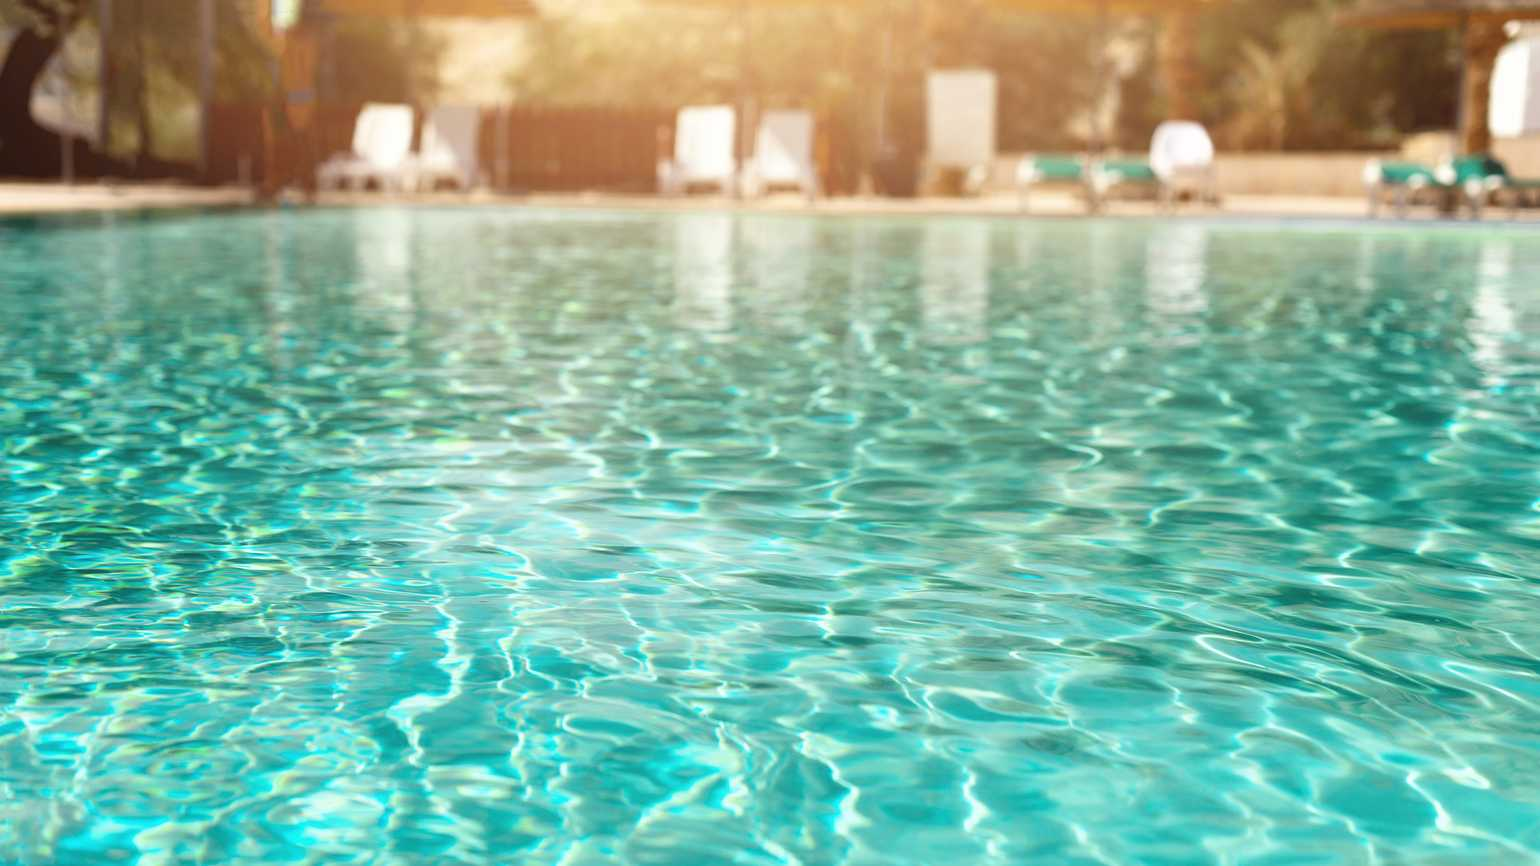 A close up of a pool as chair line the poolside.